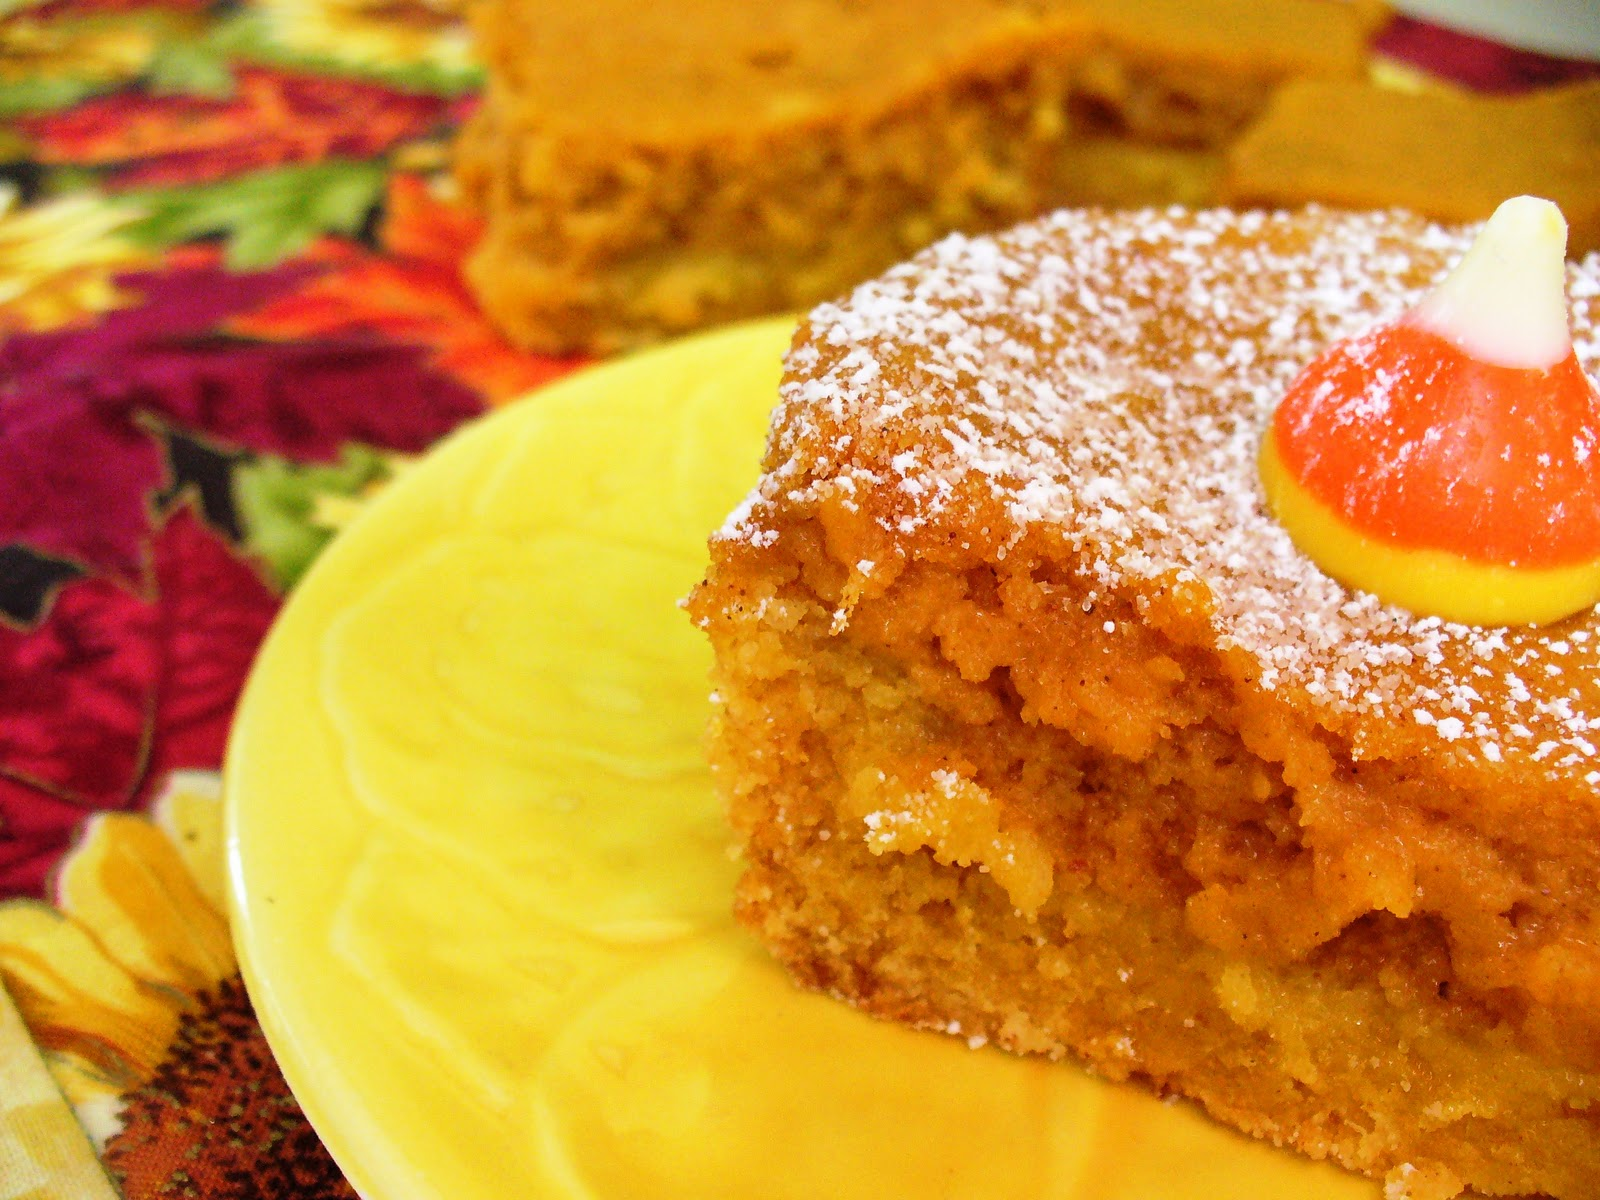 Leenee's Sweetest Delights: Pumpkin Gooey Butter Cake